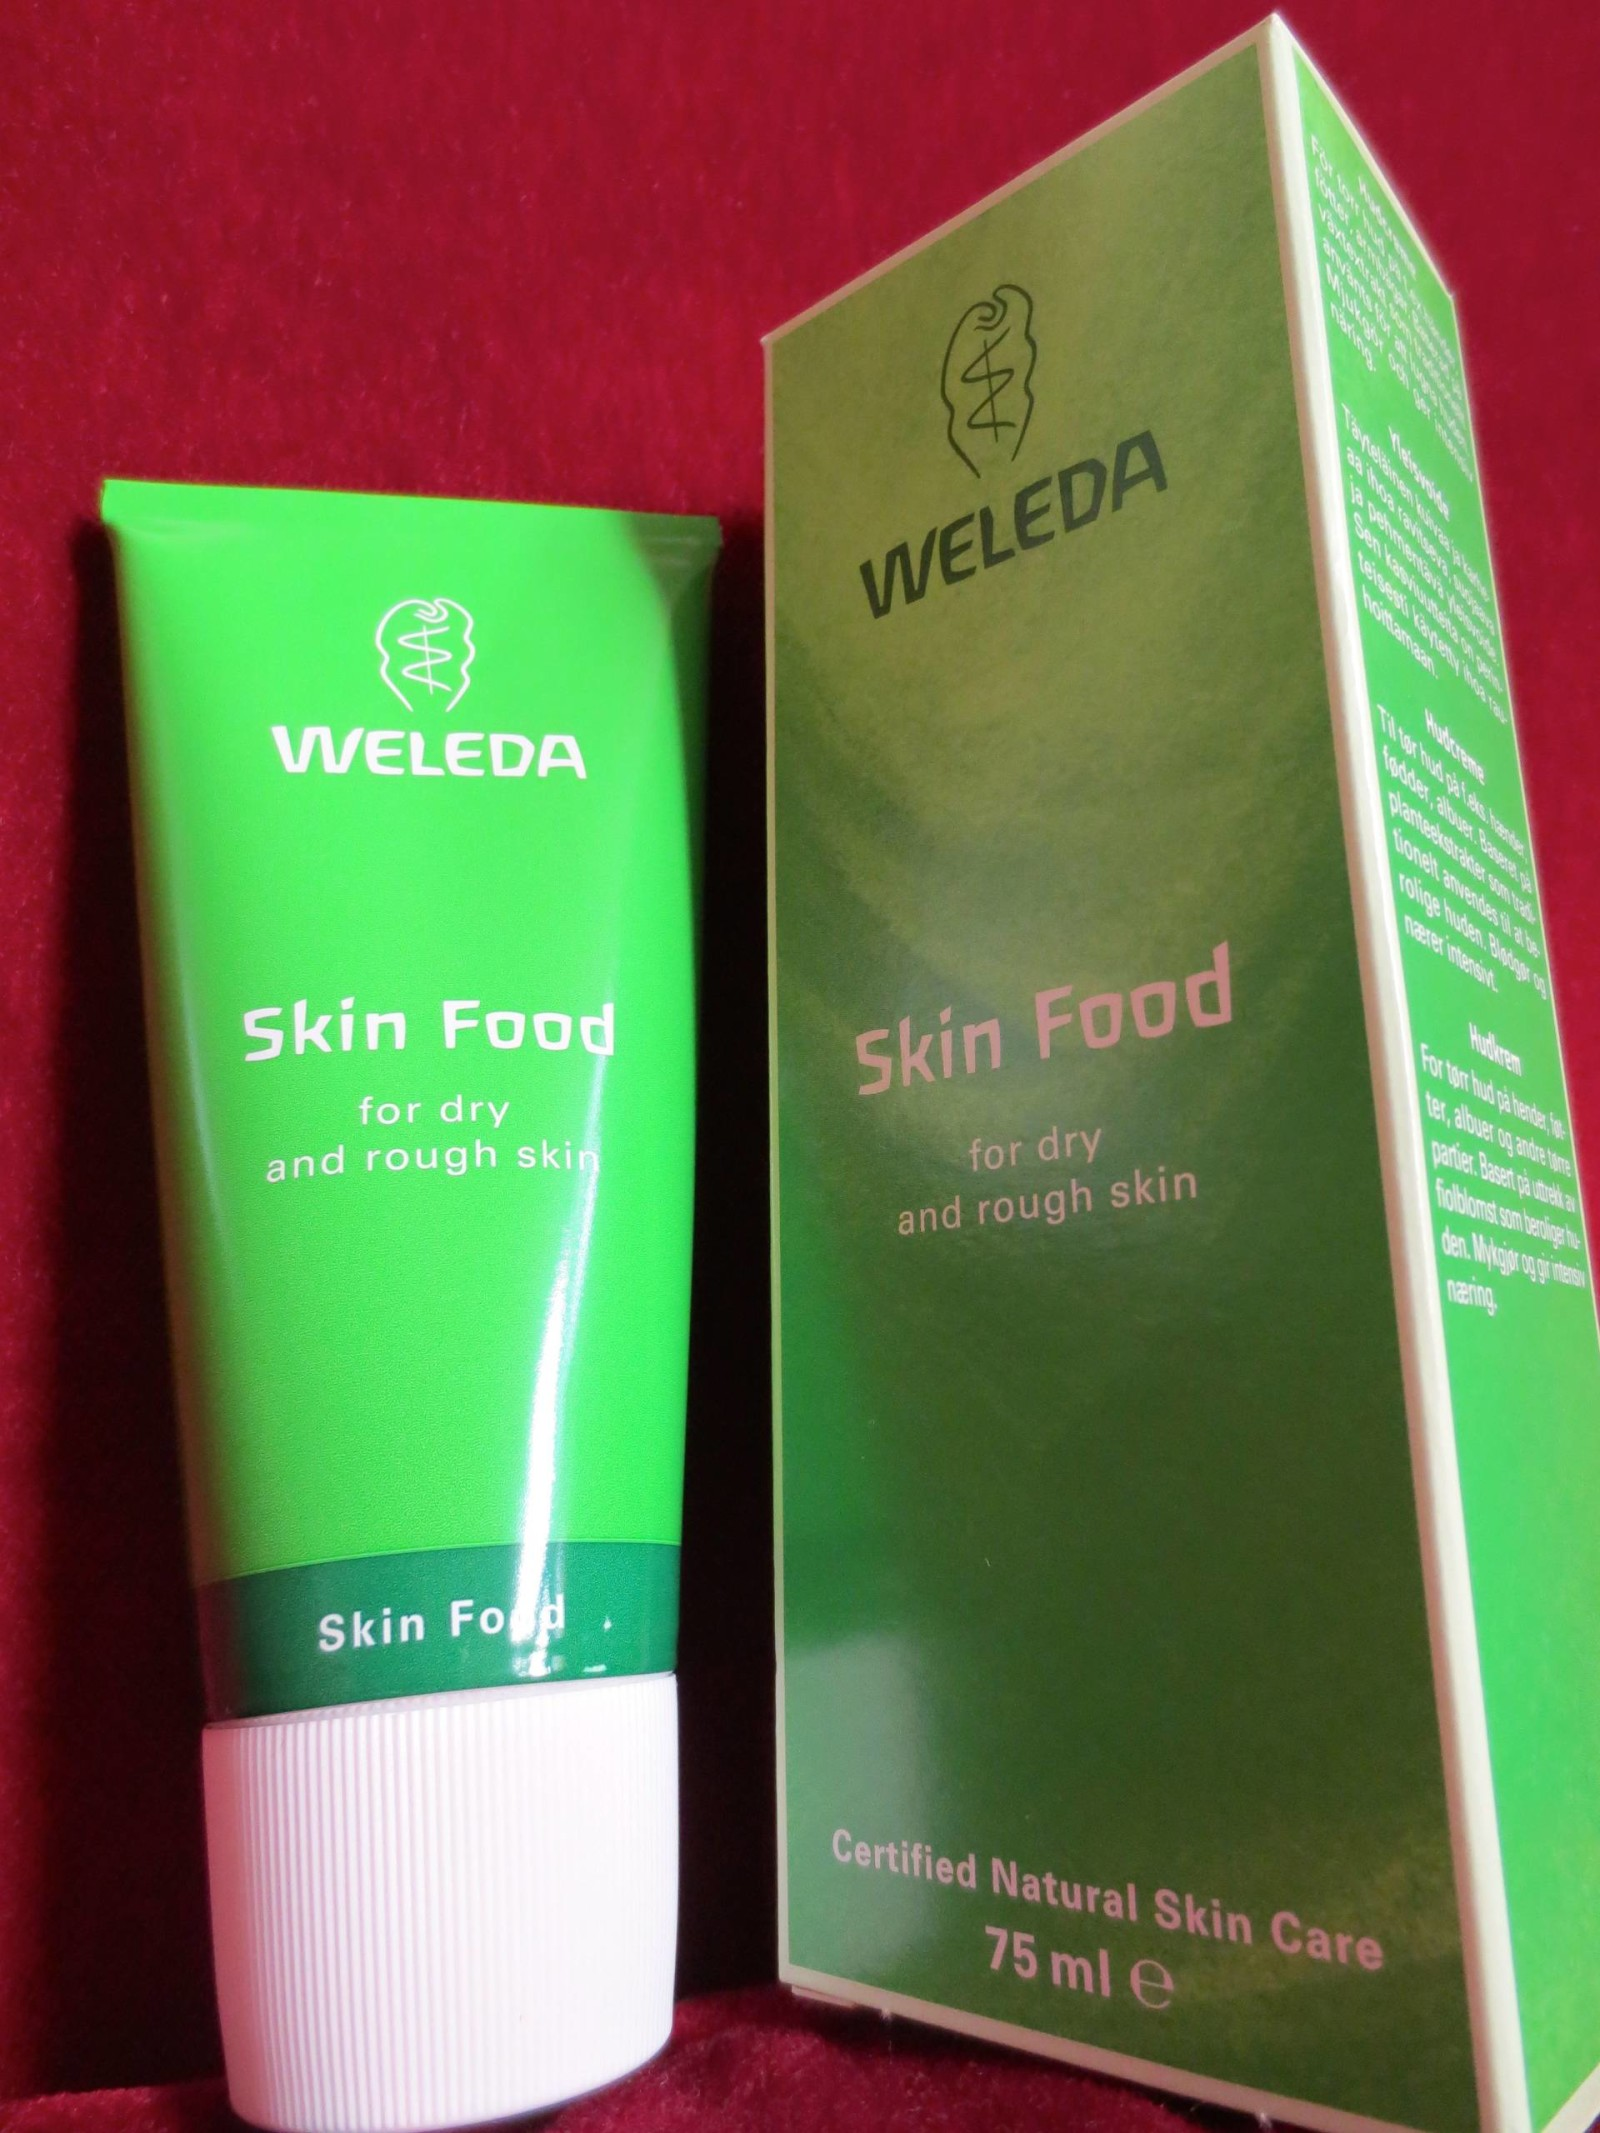 Weleda skin food – what is all the fuss about?